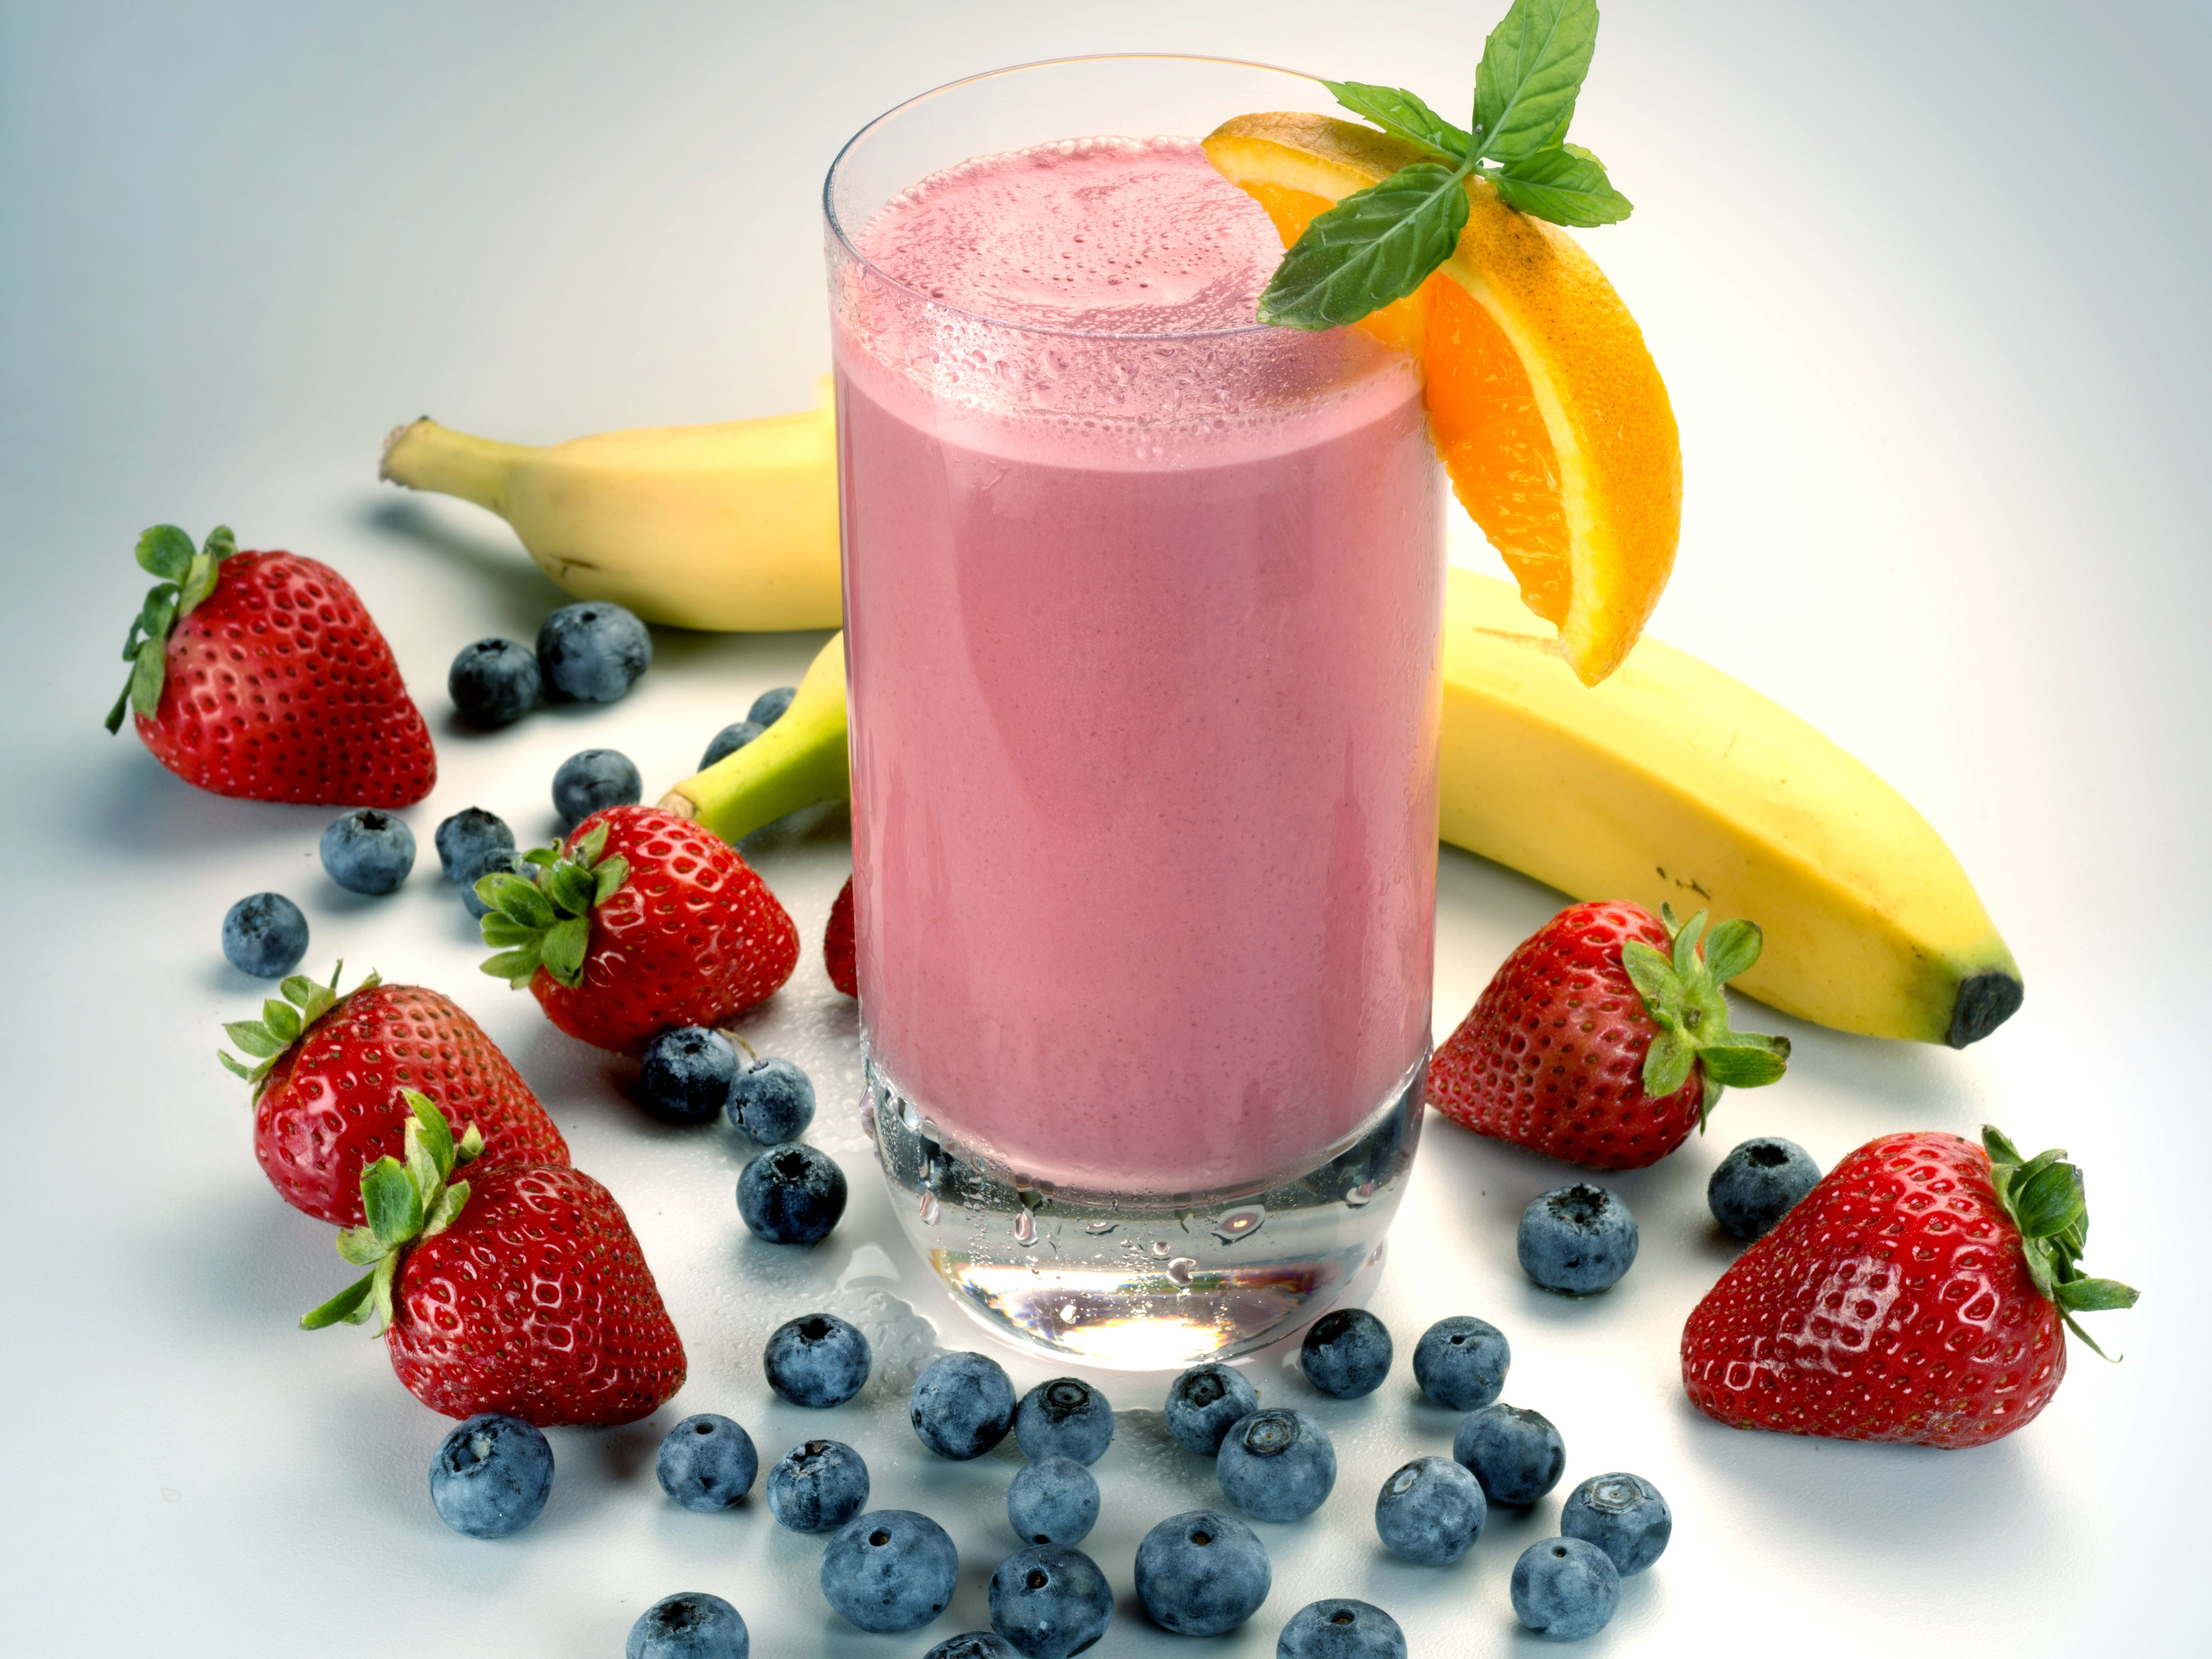 How to Make an IBS-Friendly Smoothie